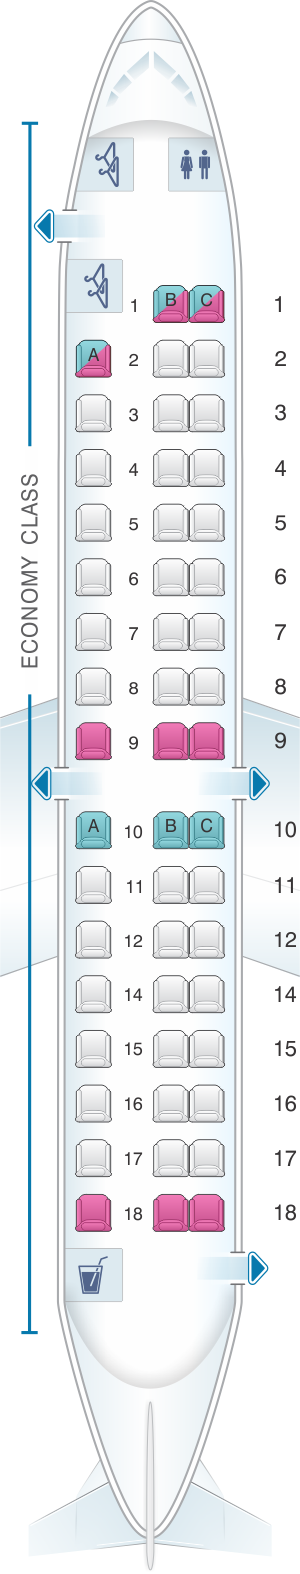 Seat map for Moldavian Airlines SAAB-2000